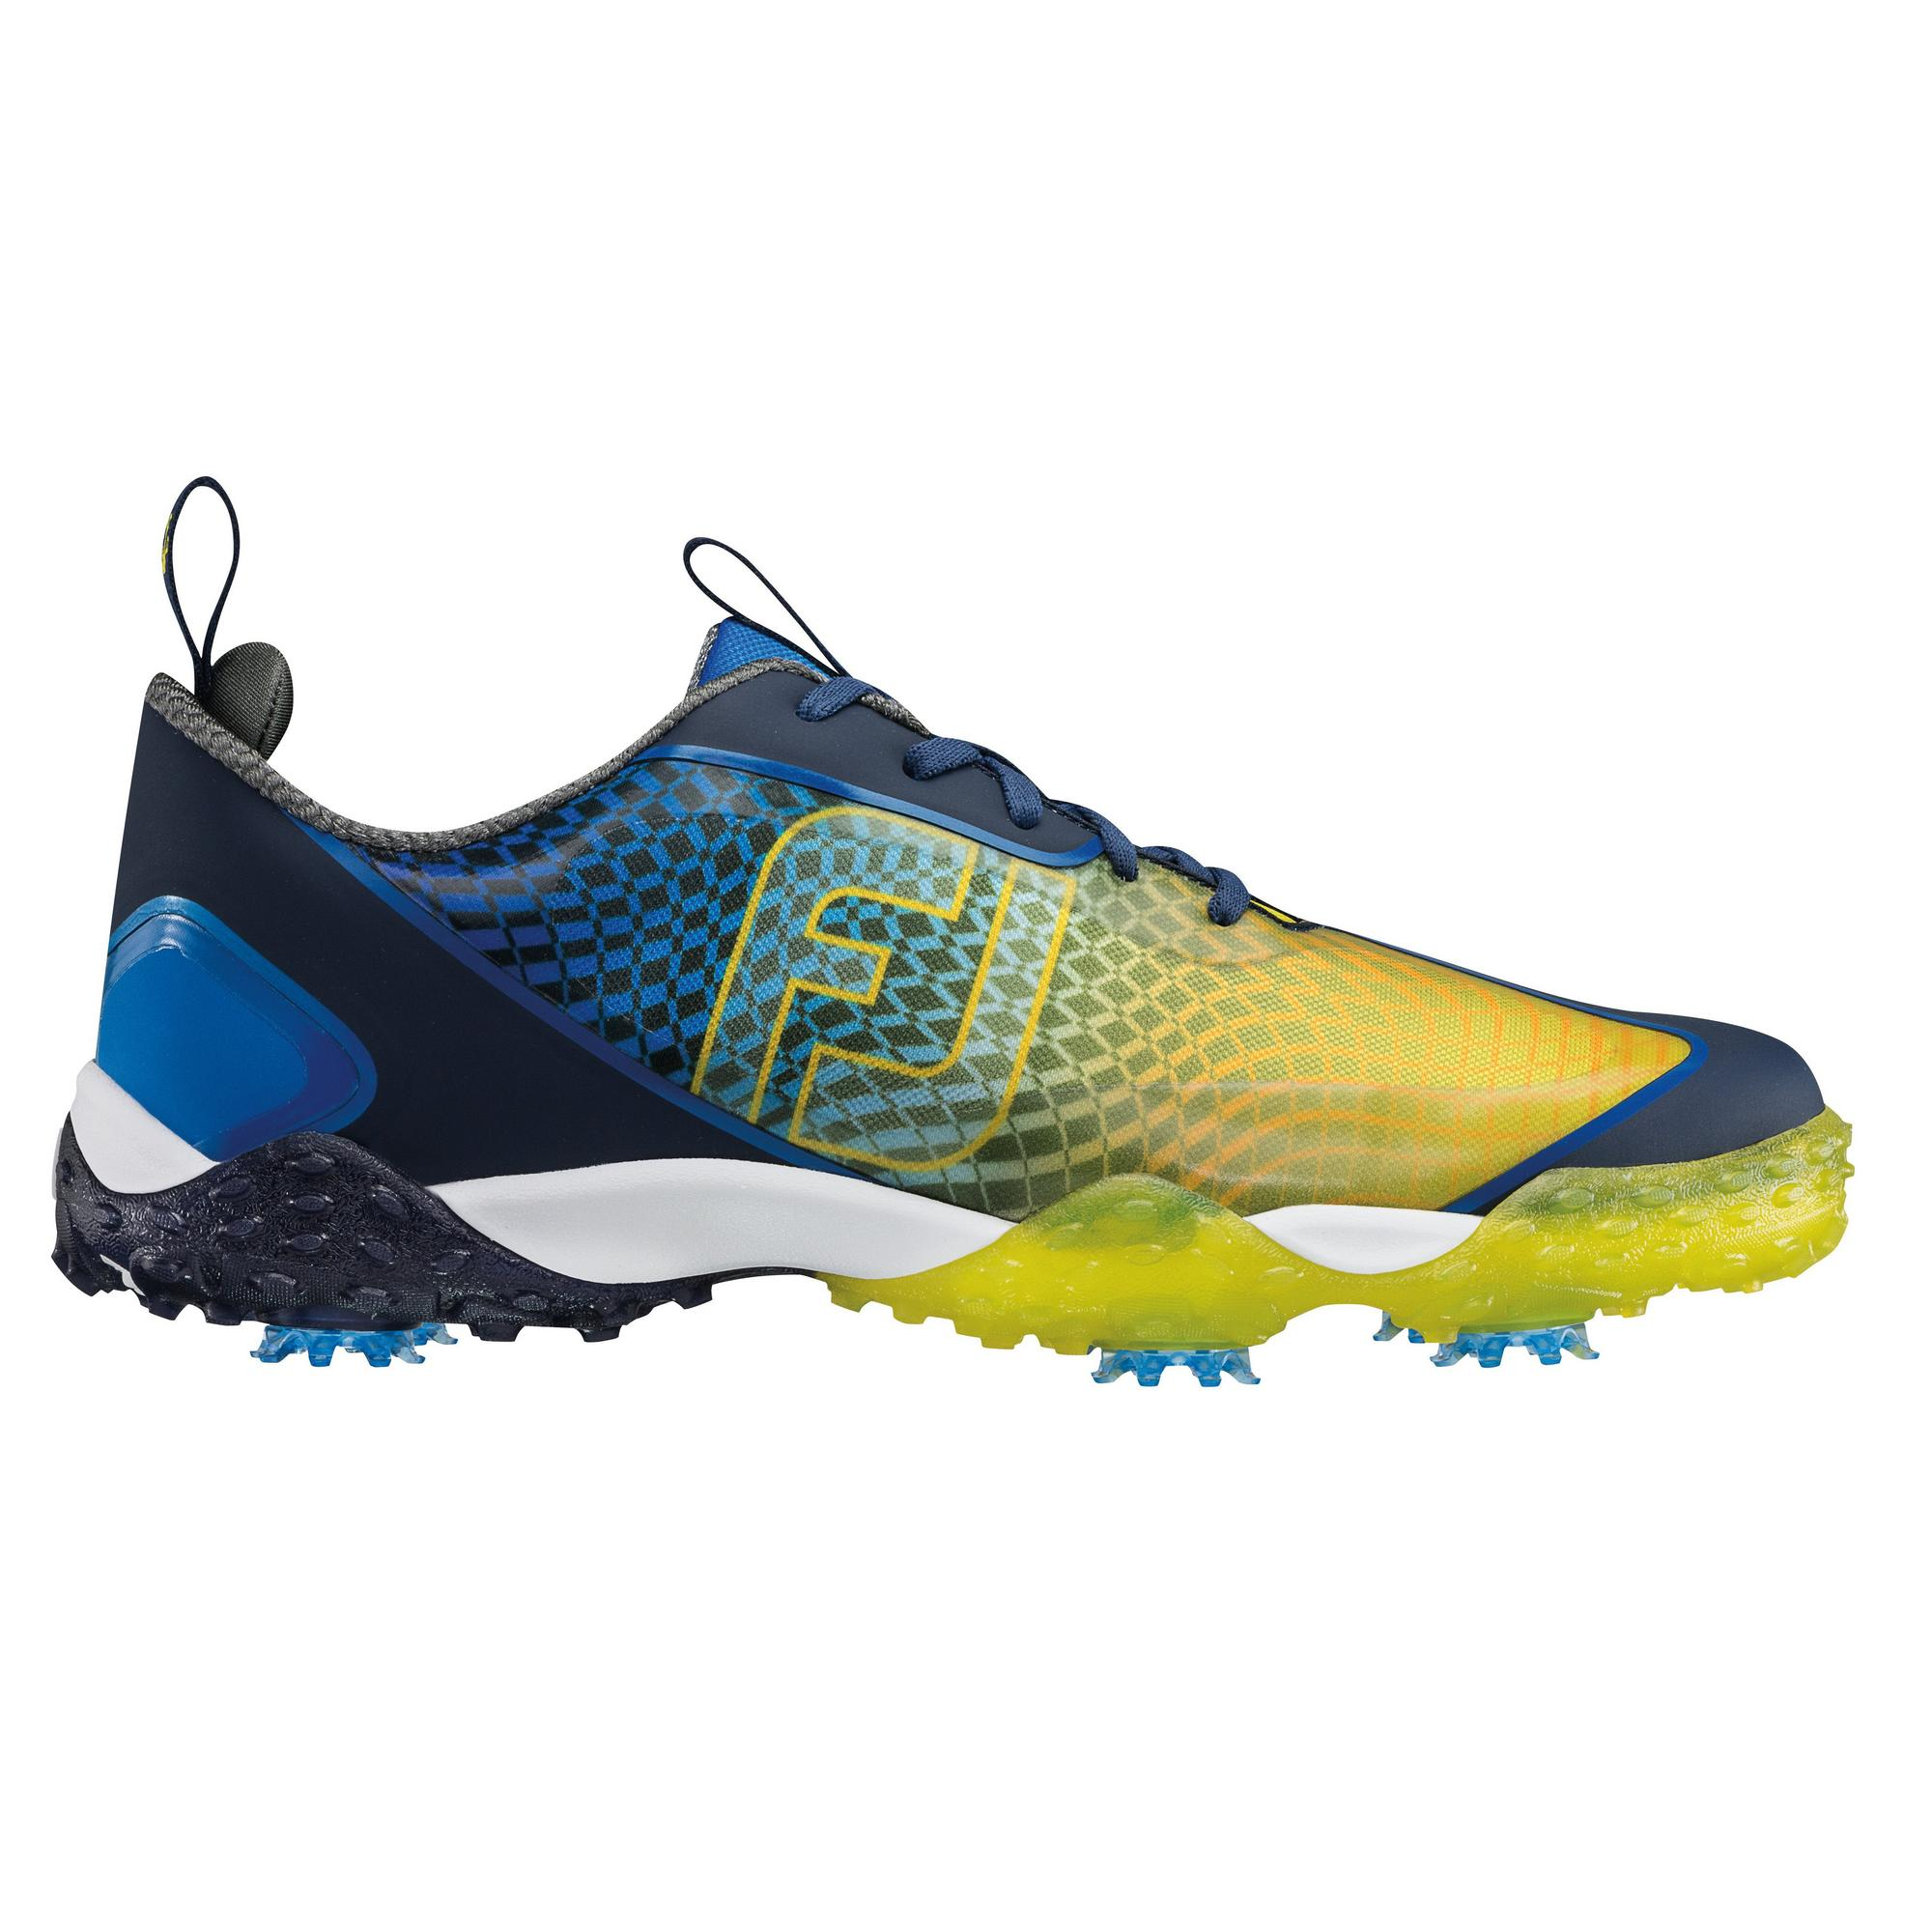 Men's Freestyle 2.0 Spiked Golf Shoe - Blue/Yellow